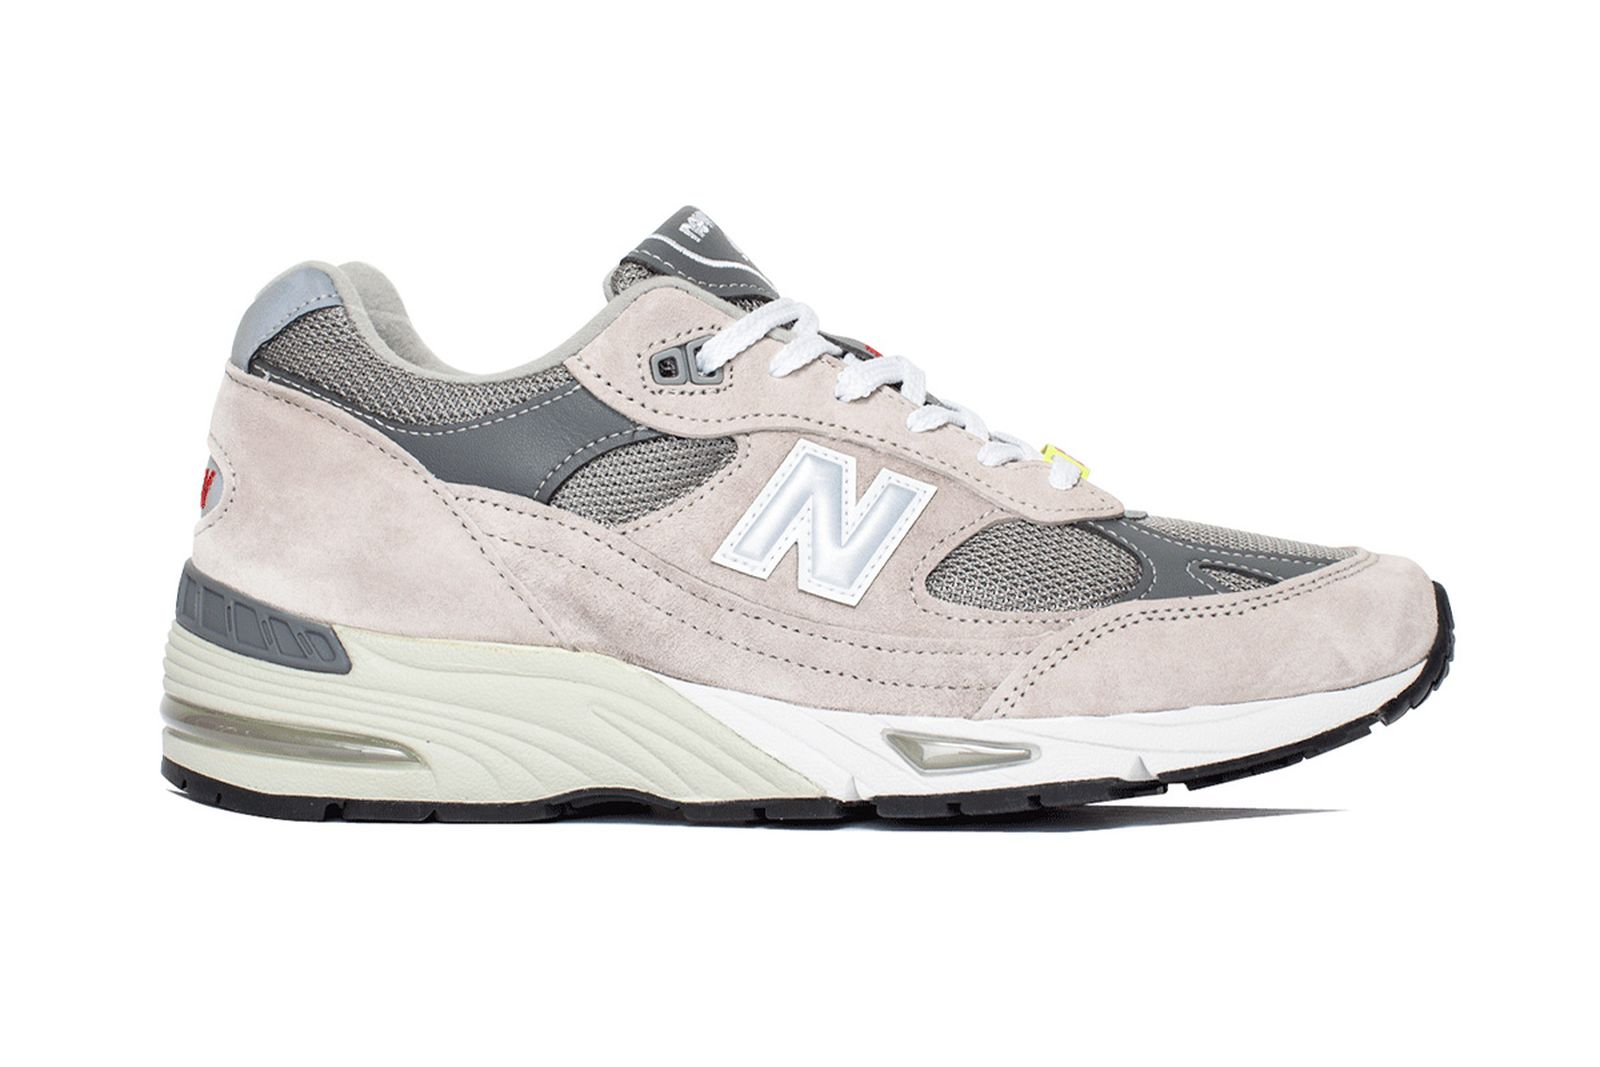 one-block-down-new-balance-991-release-date-price-04